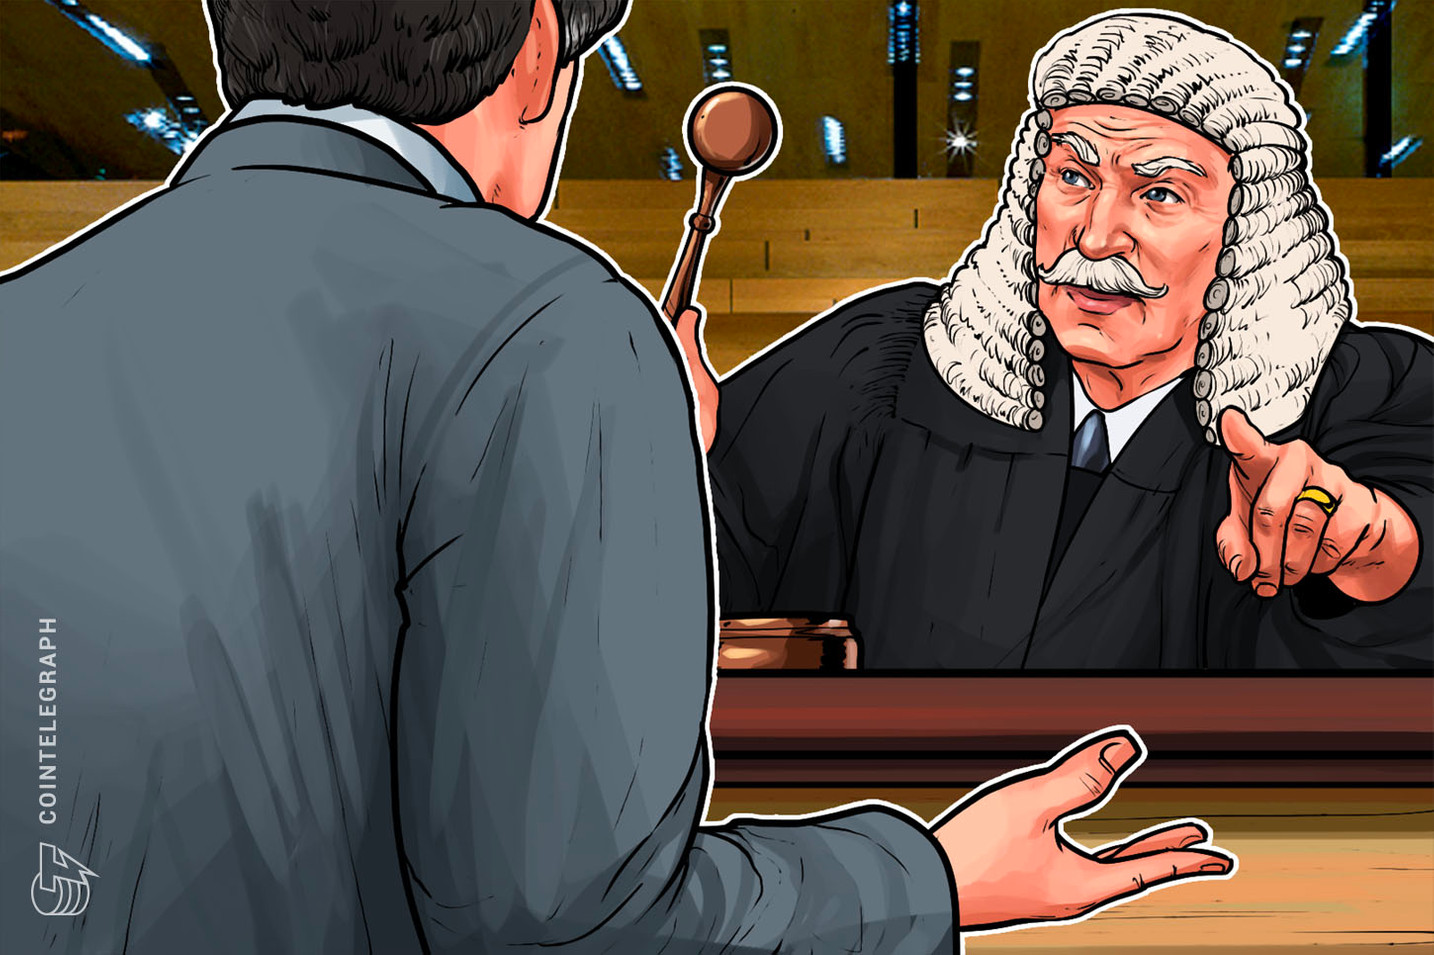 BitFunder Founder Pleads Guilty to Charges of Fraud and Obstruction of Justice